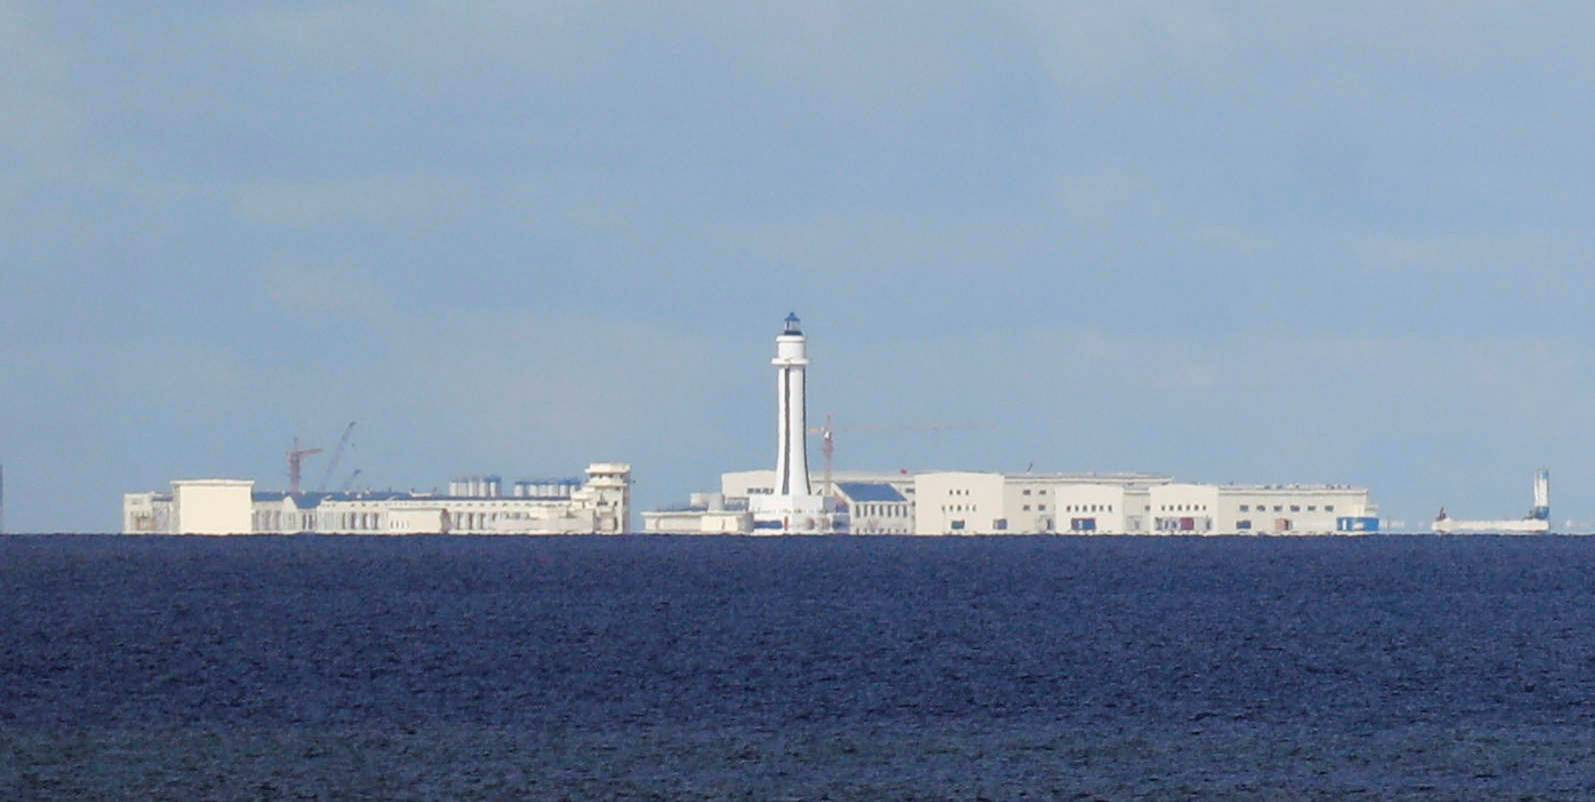 Chinese structures are pictured at the disputed Spratly Islands in the South China Sea in April 2017. After Washington last week hardened its position by explicitly rejecting Chinese maritime claims in the South China Sea, U.S. embassies in the region produced an unprecedented flurry of op-eds and statements criticizing Beijing's actions, including through social media outlets. | REUTERS